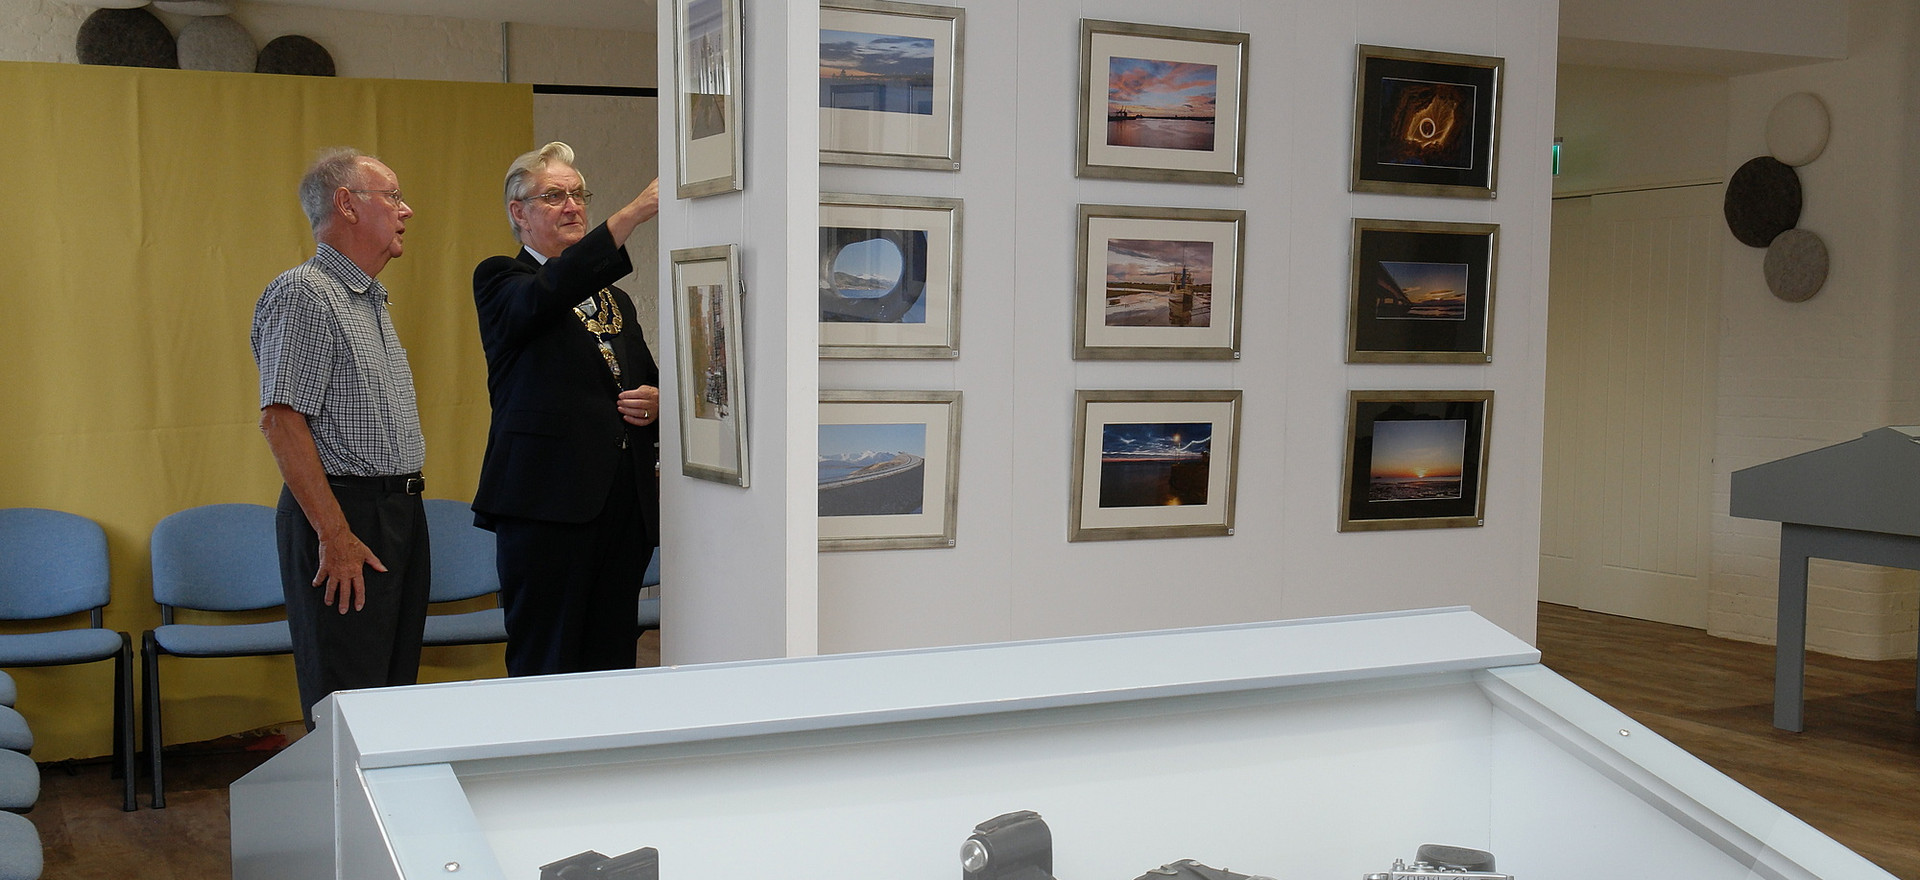 Annual exhibition preview evening